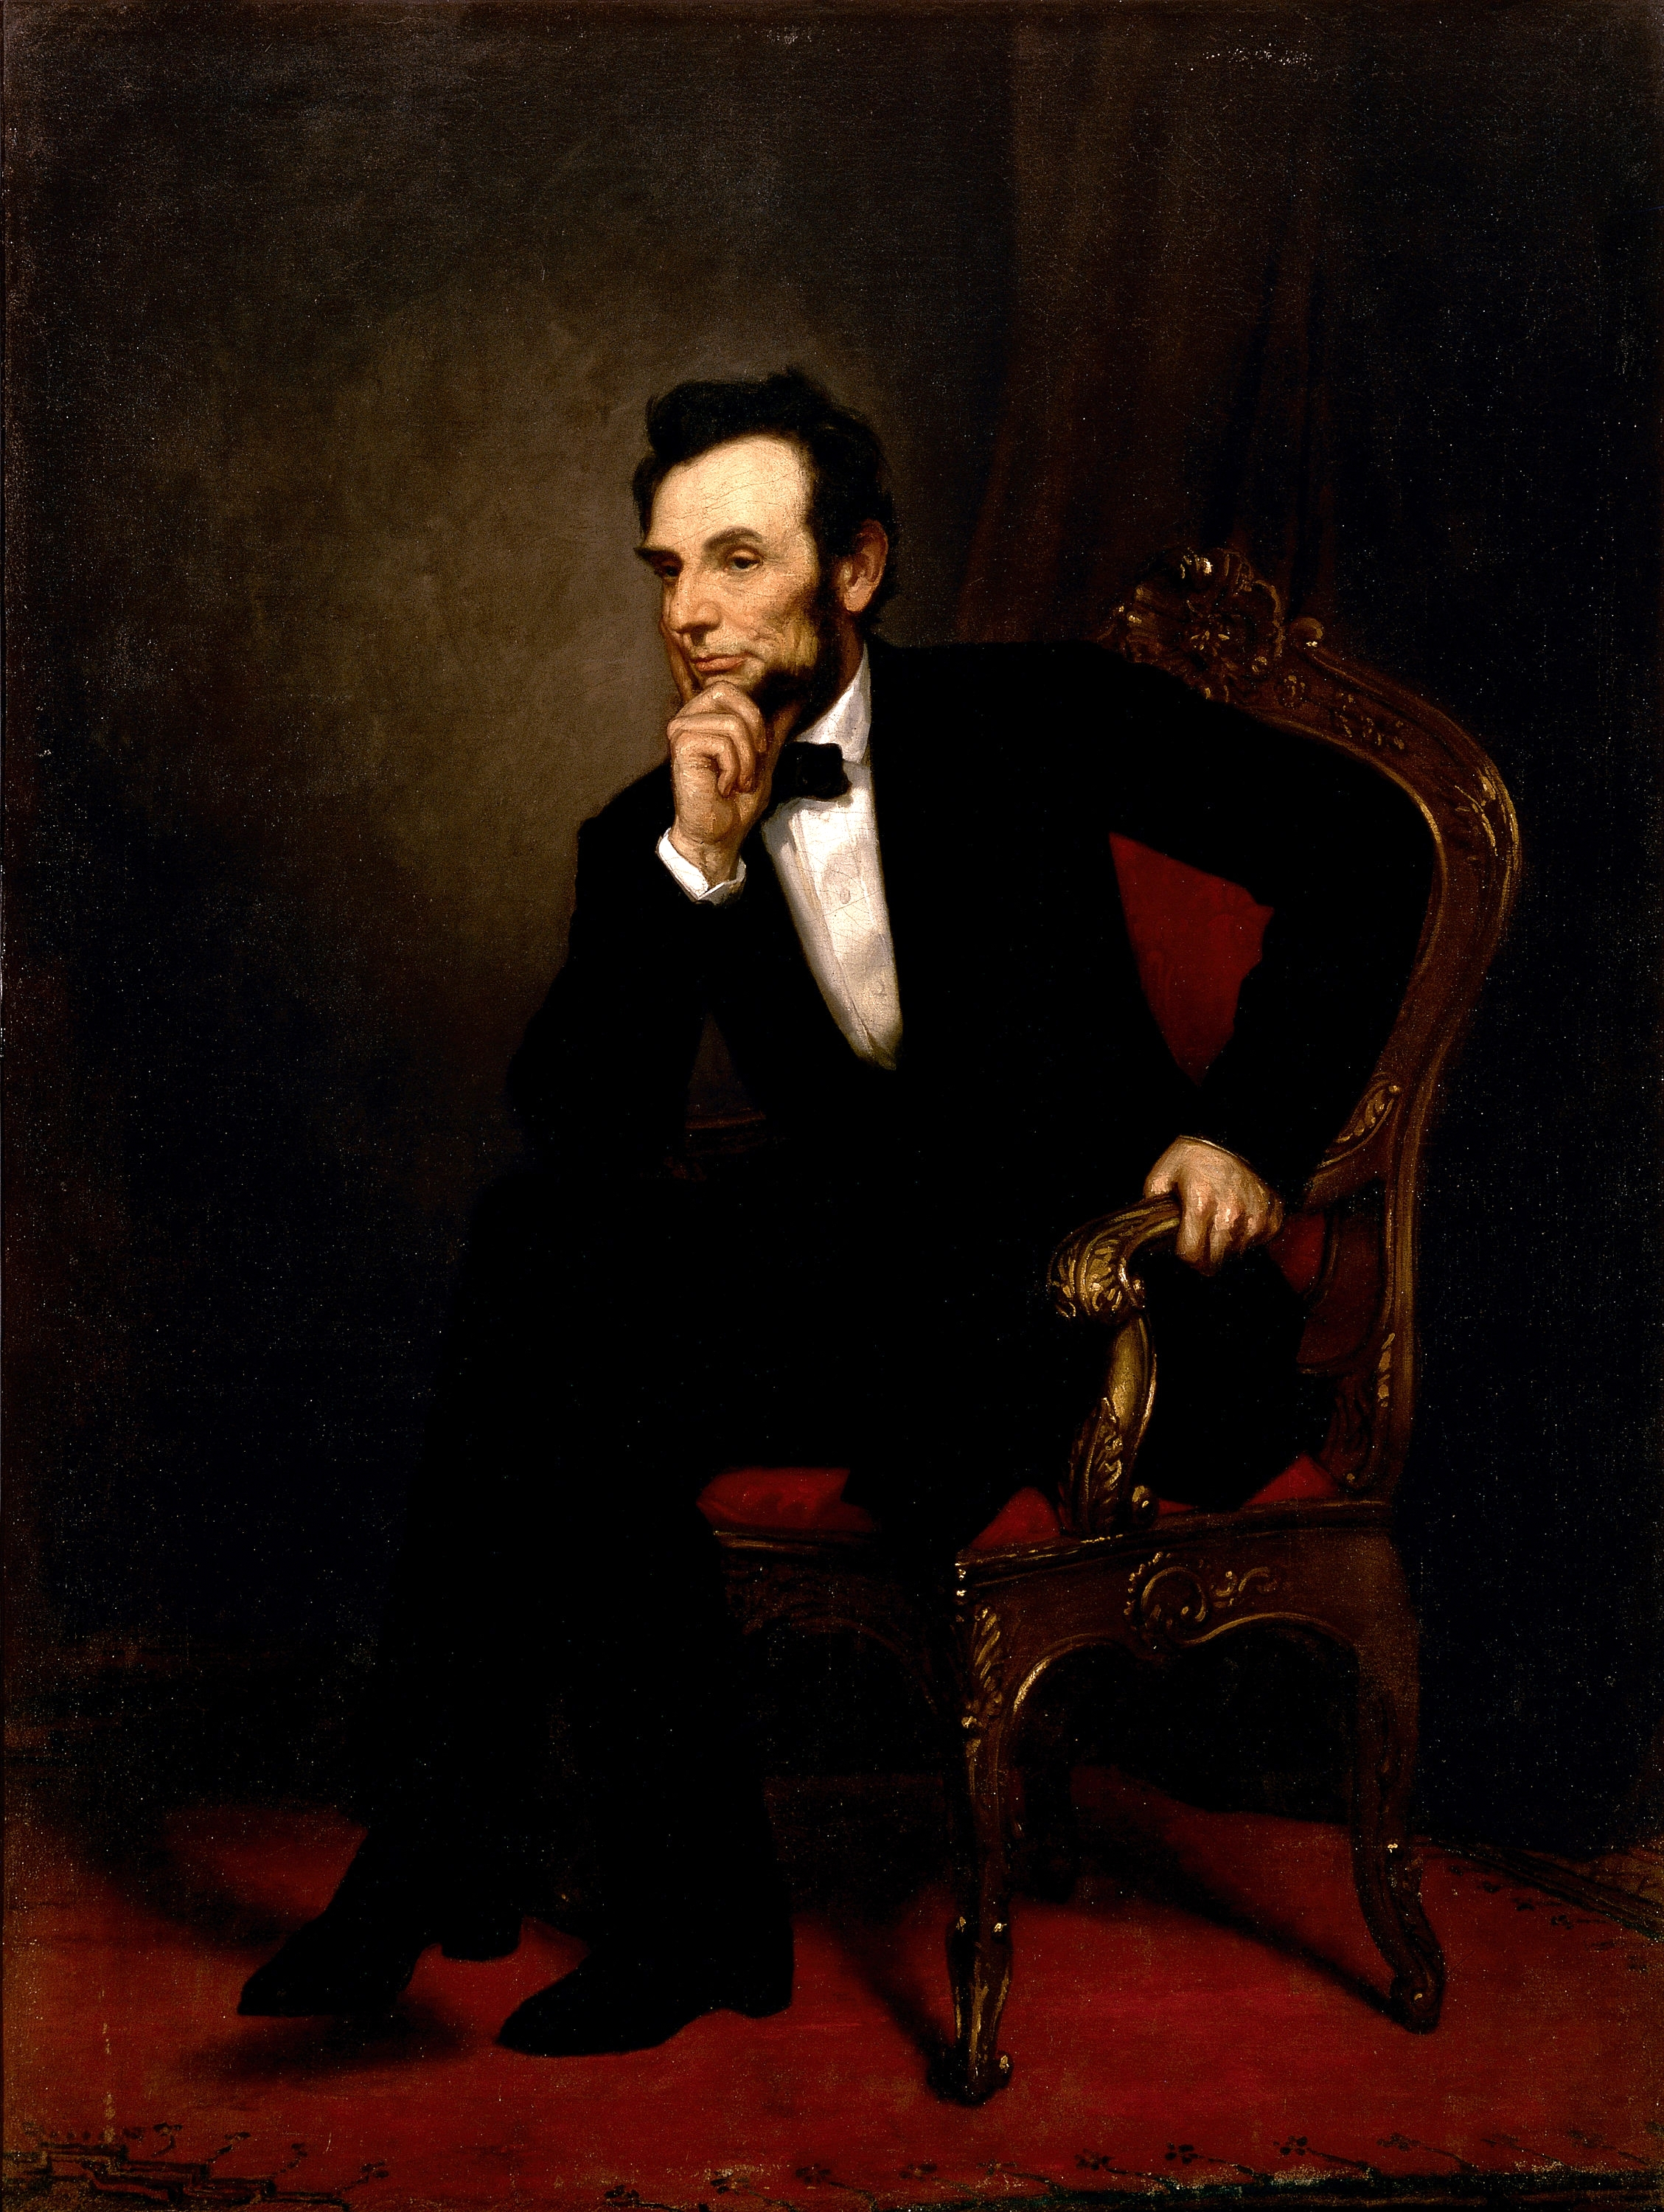 http://upload.wikimedia.org/wikipedia/commons/5/5f/Abraham_Lincoln_by_George_Peter_Alexander_Healy.jpg